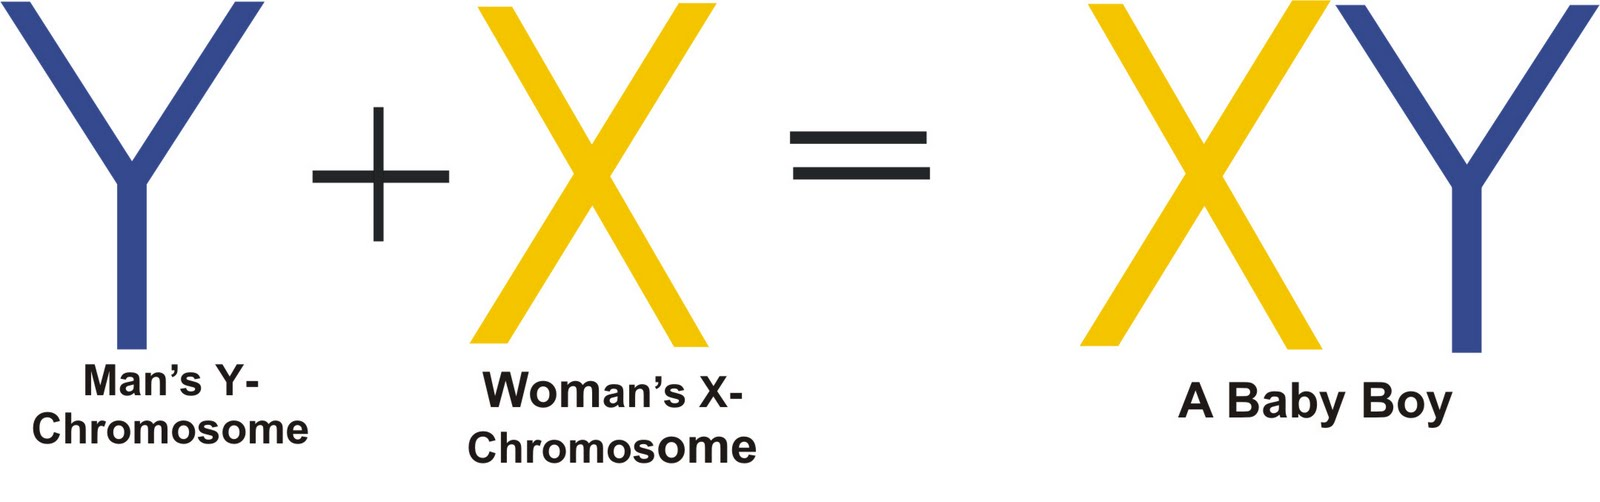 ... chromosome ... Y Chromosome Sperm